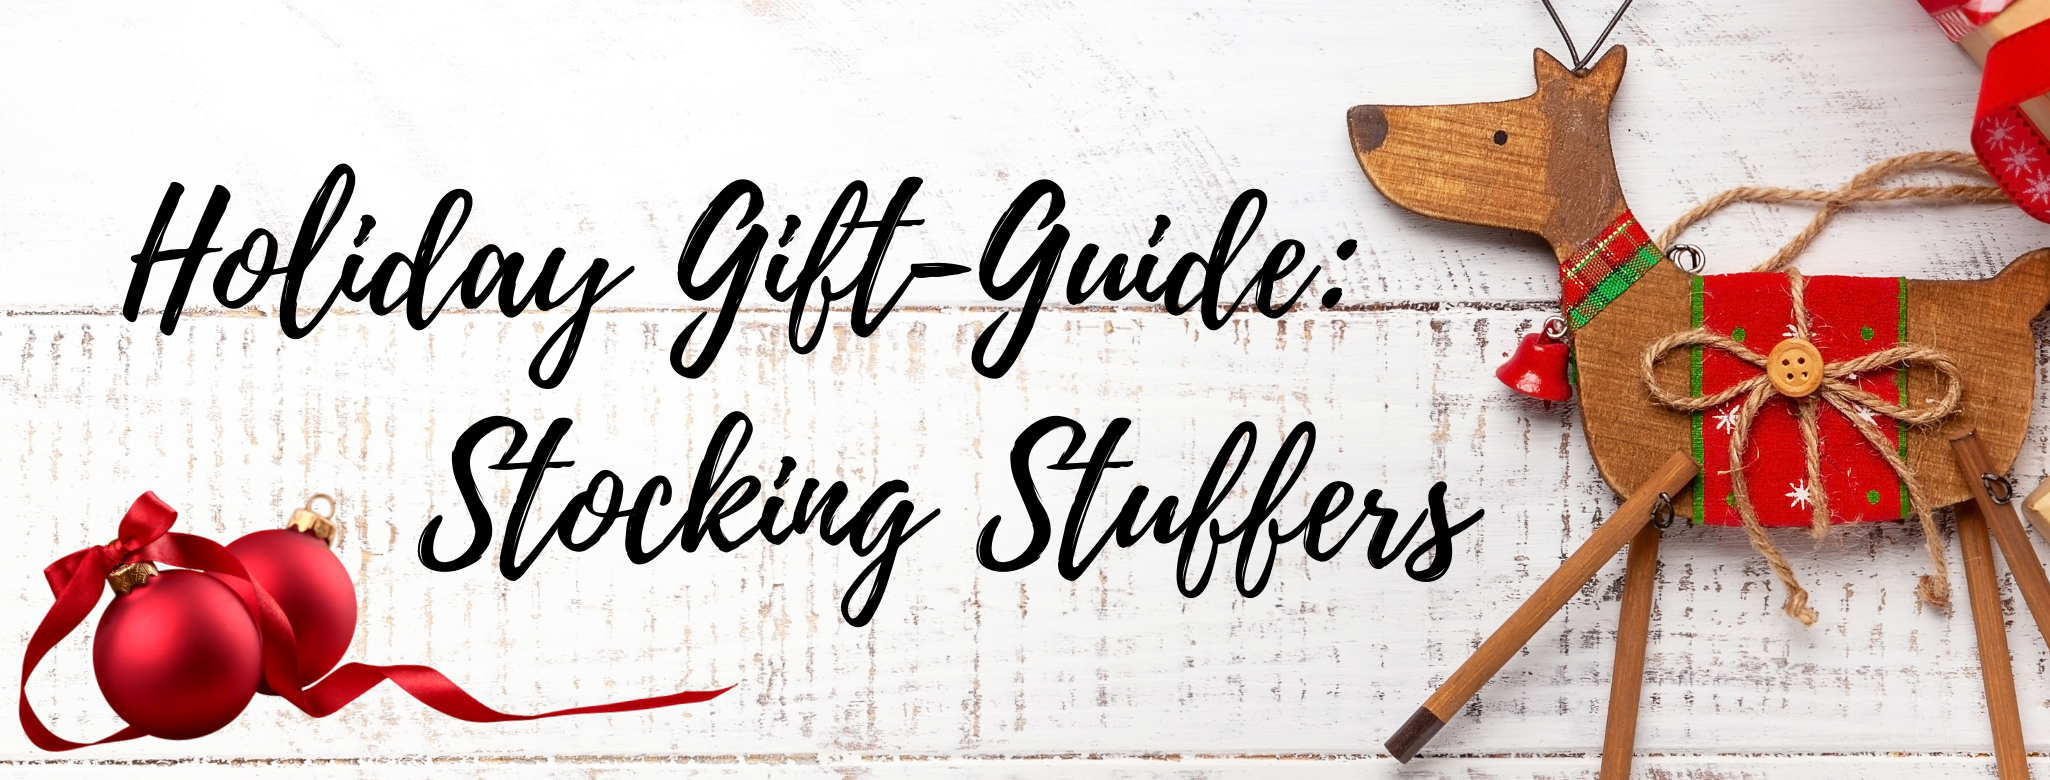 HOLIDAY GIFT-GUIDE: STOCKING STUFFERS